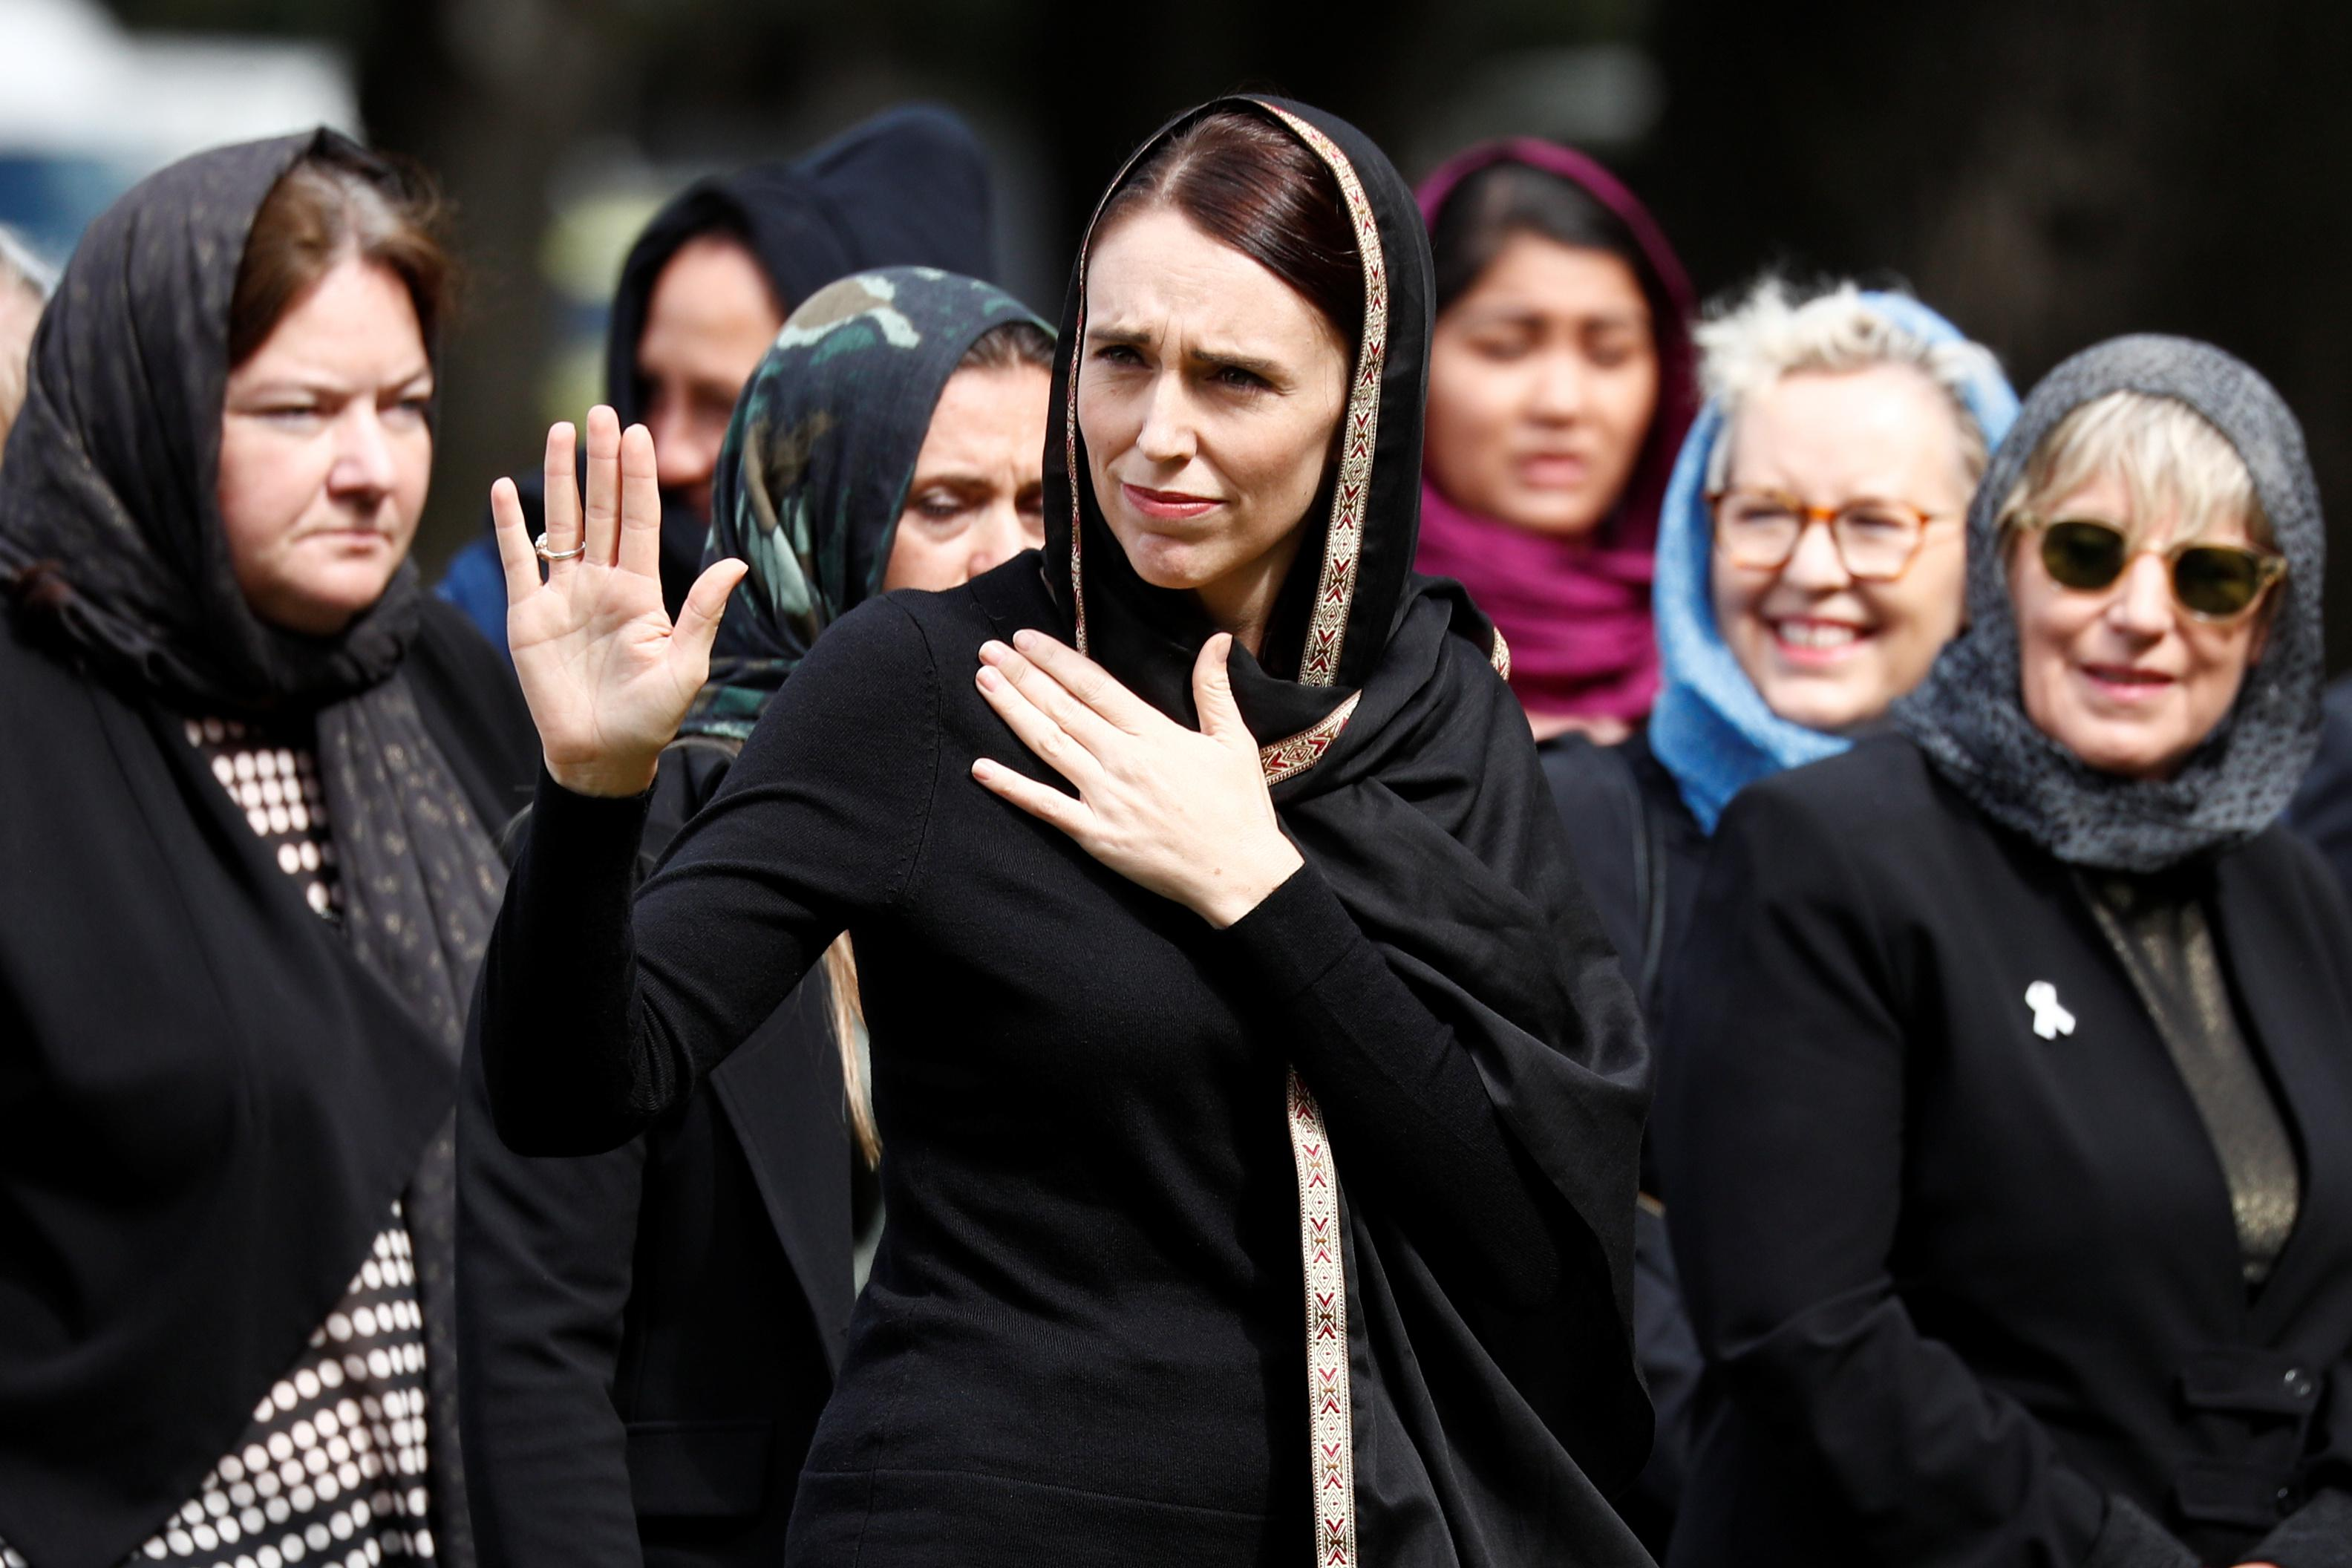 Insensitive and exploitive: Film on Christchurch shooting causes uproar